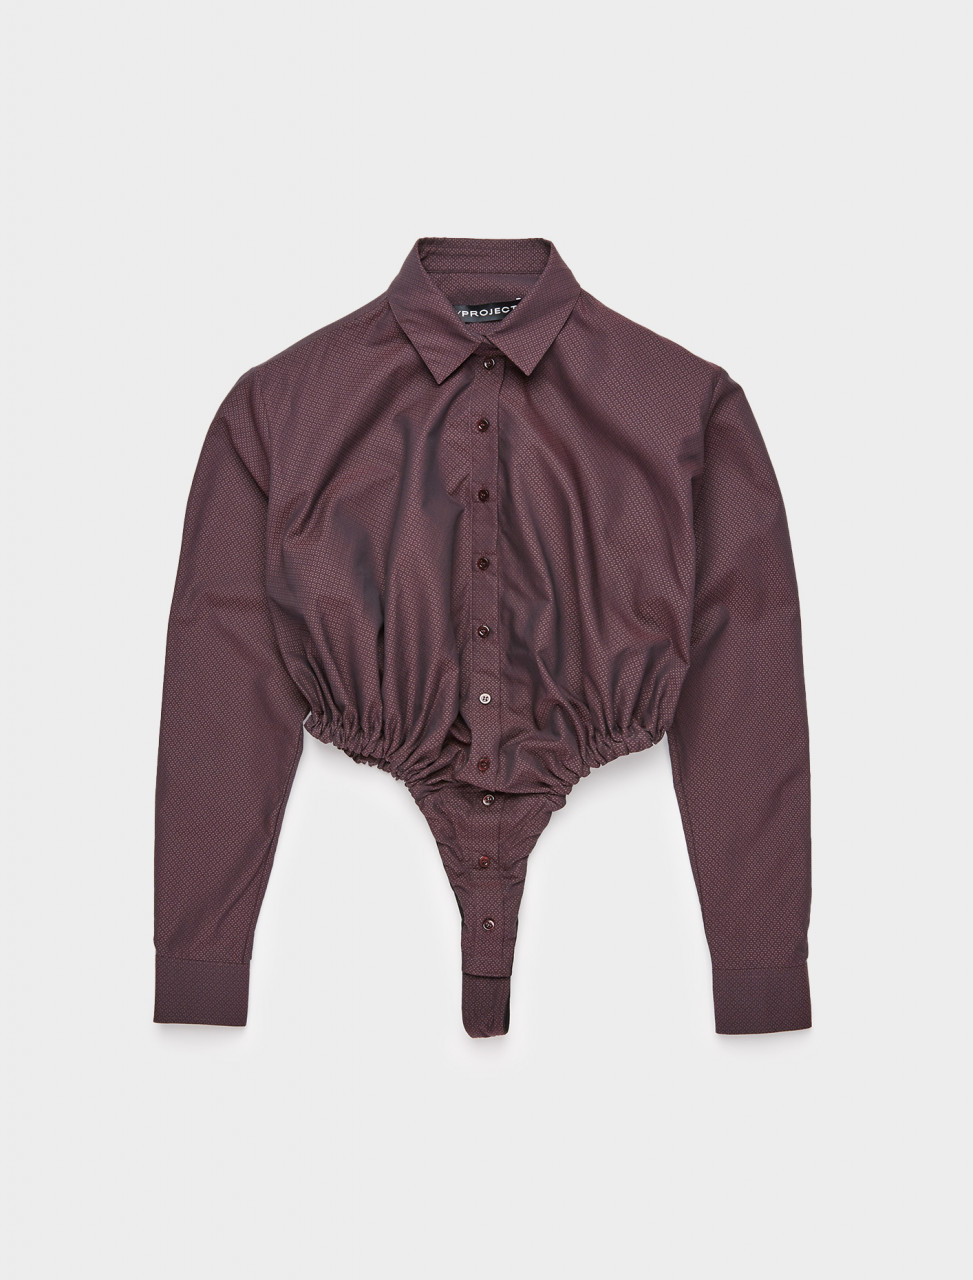 213-WBODY11-S19-F253 Y PROJECT ROUCHED BODY SHIRT